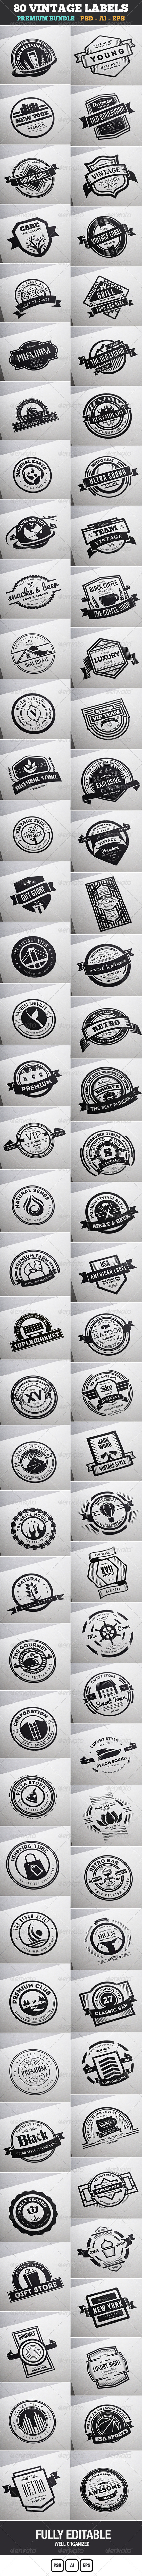 GraphicRiver 80 Vintage Labels & Badges Logos Bundle 7553006